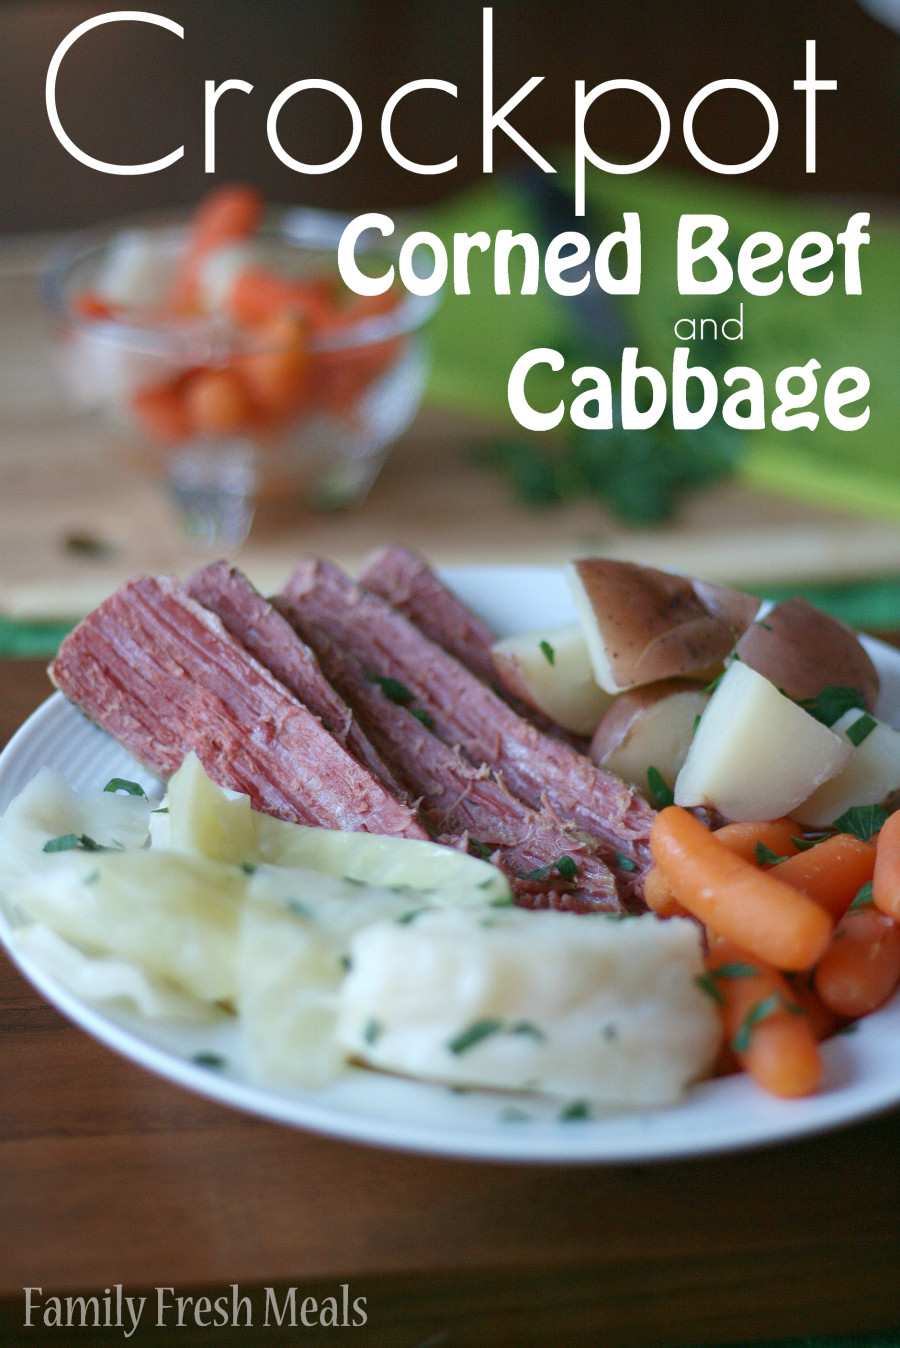 Crockpot Corn Beef And Cabbage  Crockpot Corned Beef and Cabbage Recipe Family Fresh Meals